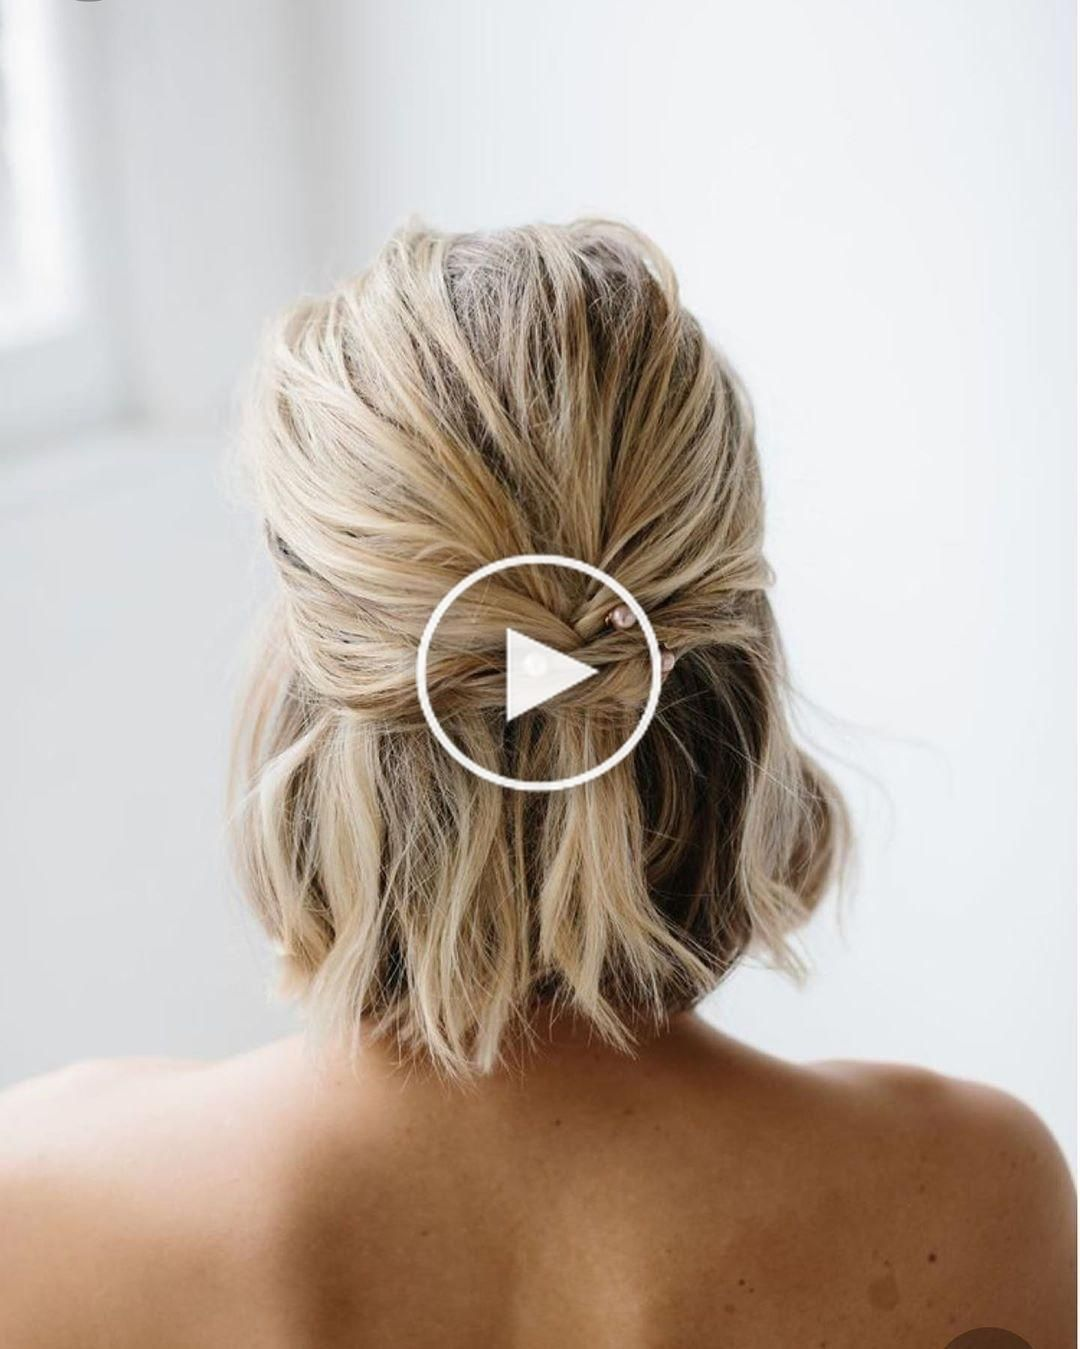 30 Perfect New Year S Eve Short Hairstyles To Ring In 2020 In 2020 Short Hair Styles Cute Hairstyles For Short Hair Cute Hairstyles For Medium Hair